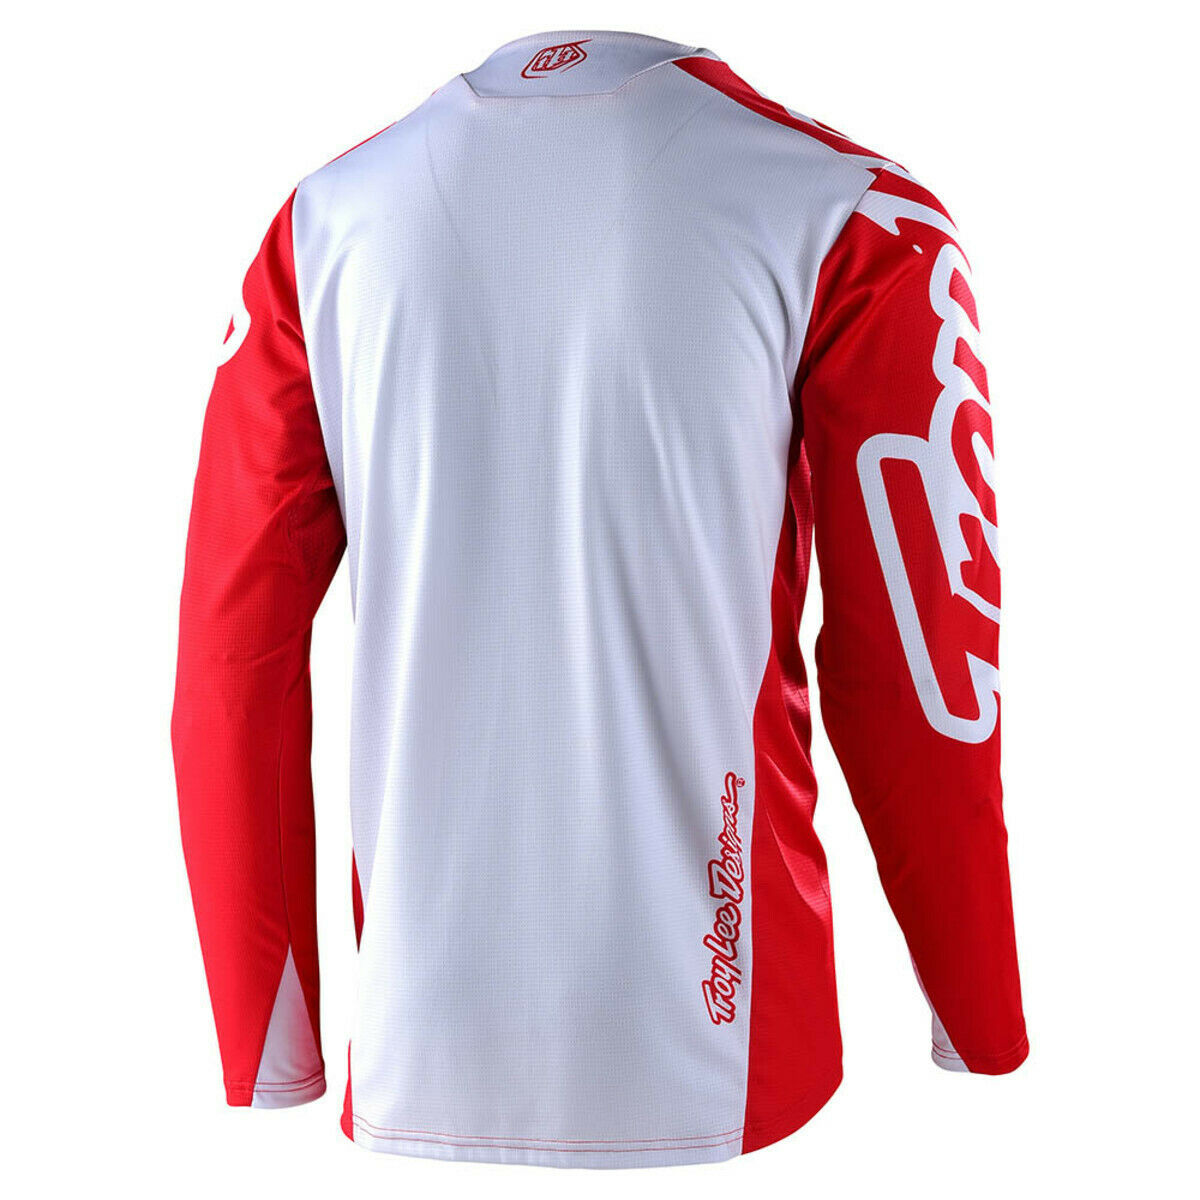 Troy Lee Designs TLD Adult Sprint Jersey Factory Sram Mountain MTB Bike Cycling